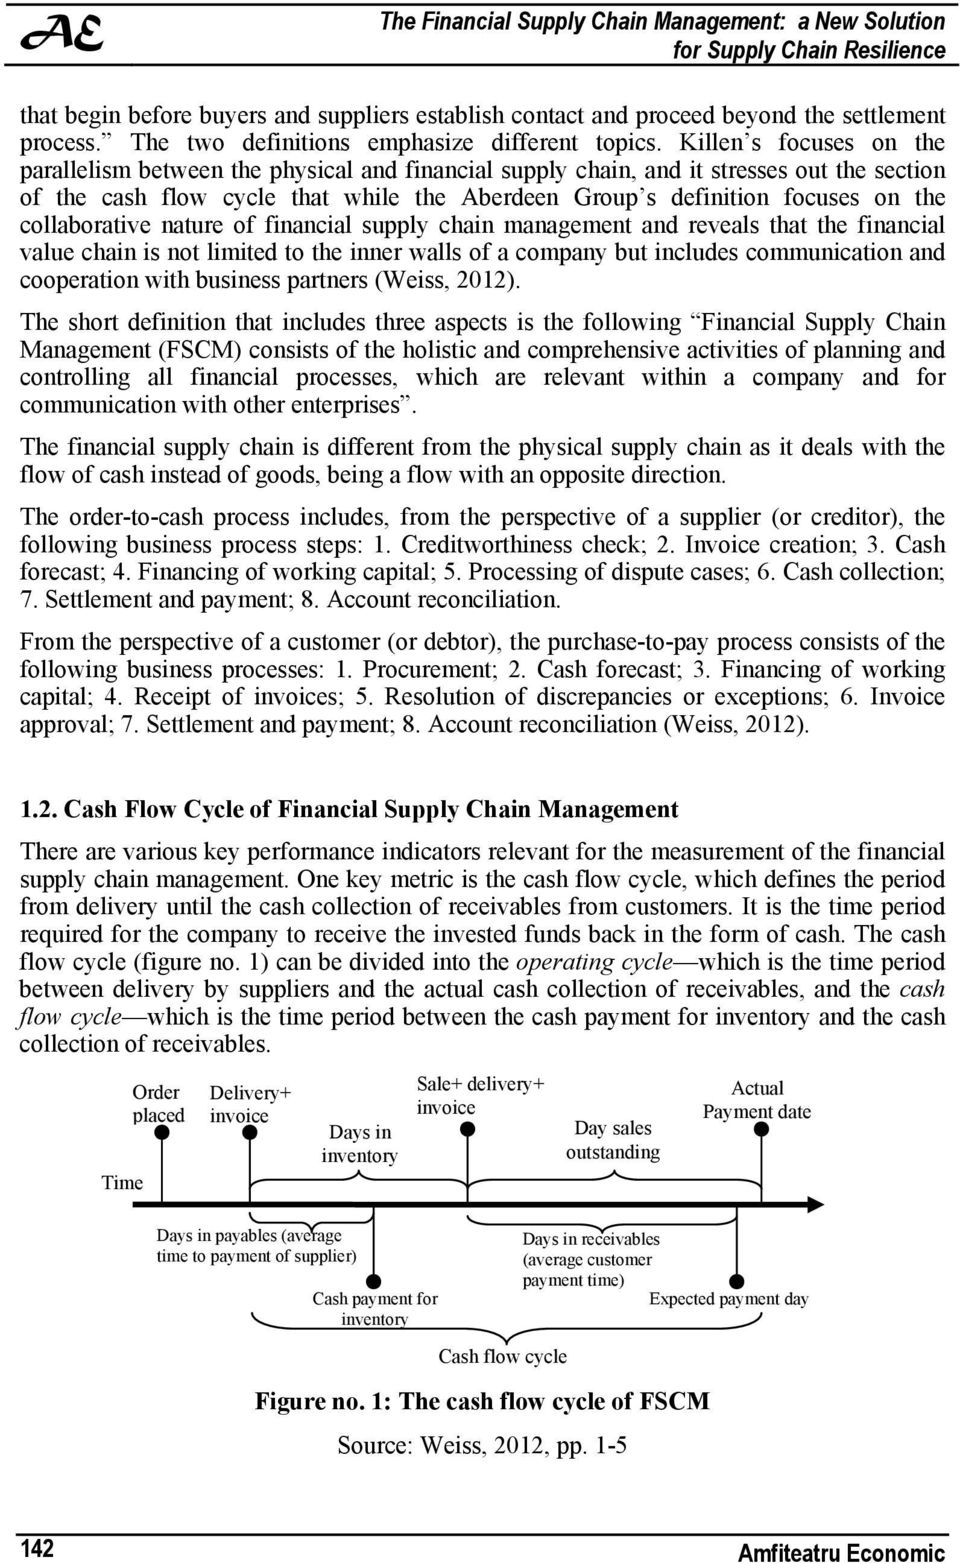 Killen s focuses on the parallelism between the physical and financial supply chain, and it stresses out the section of the cash flow cycle that while the Aberdeen Group s definition focuses on the